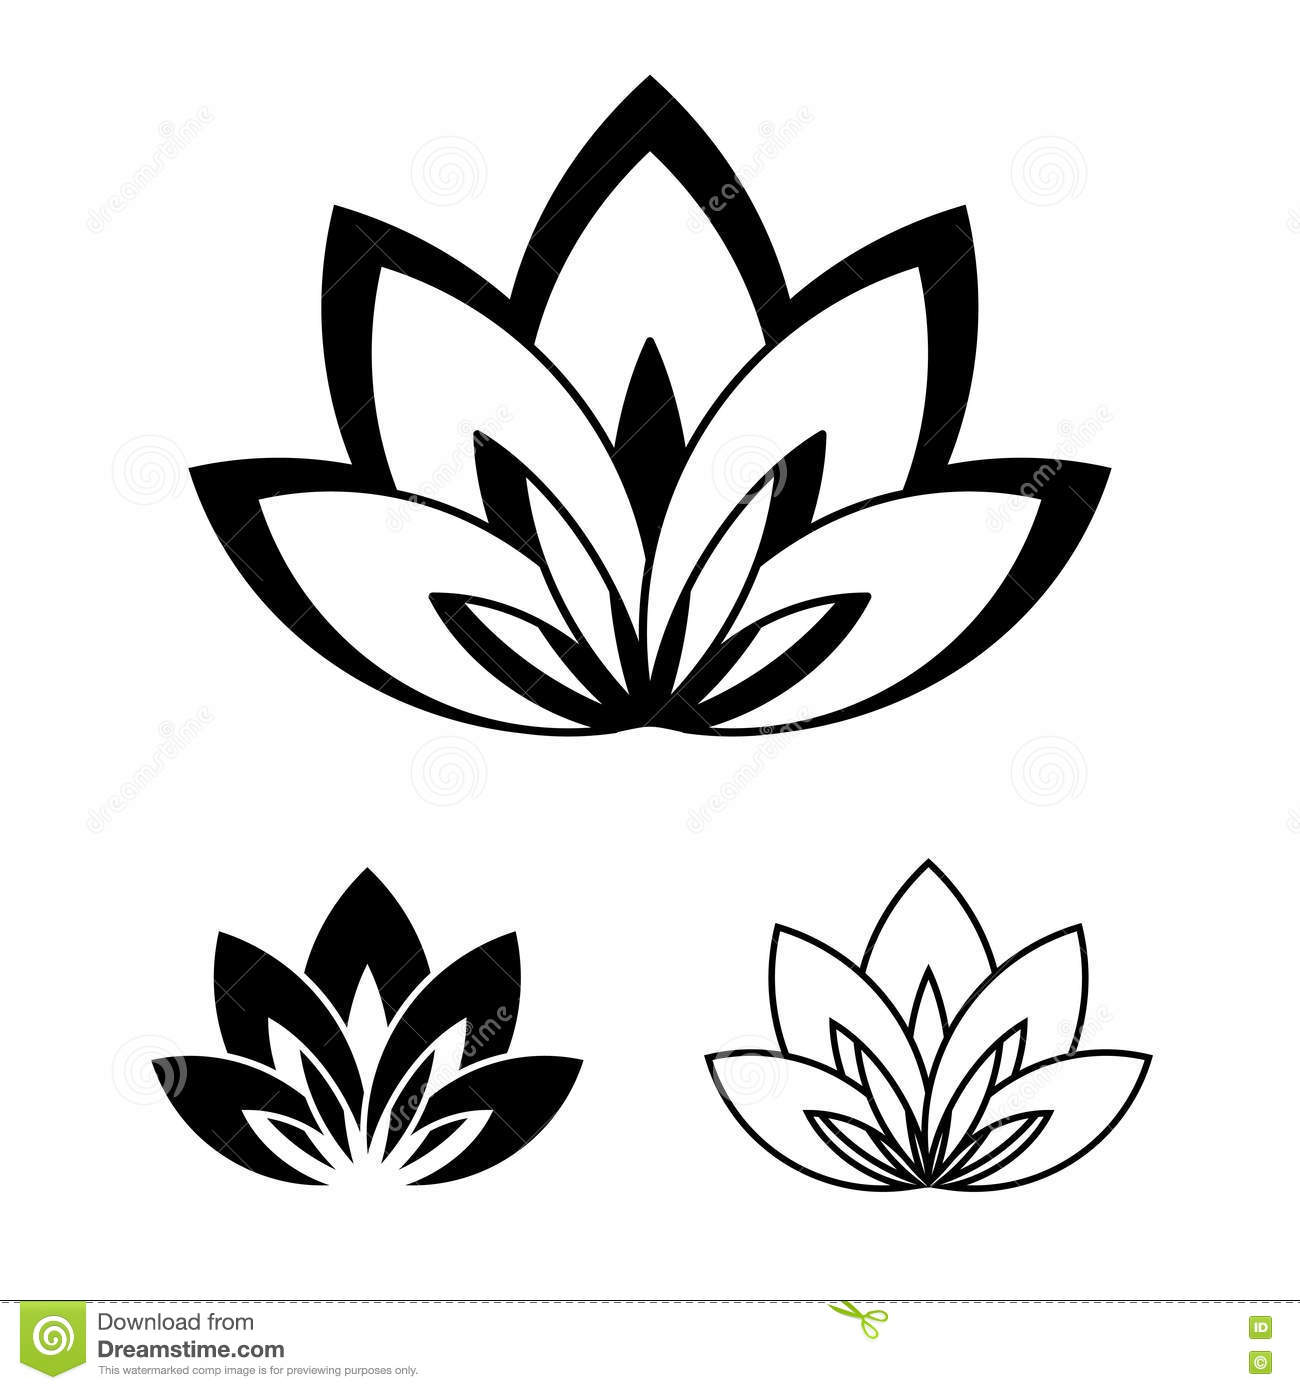 Lotus flower as a symbol of yoga stock vector illustration of lotus flower as a symbol of yoga izmirmasajfo